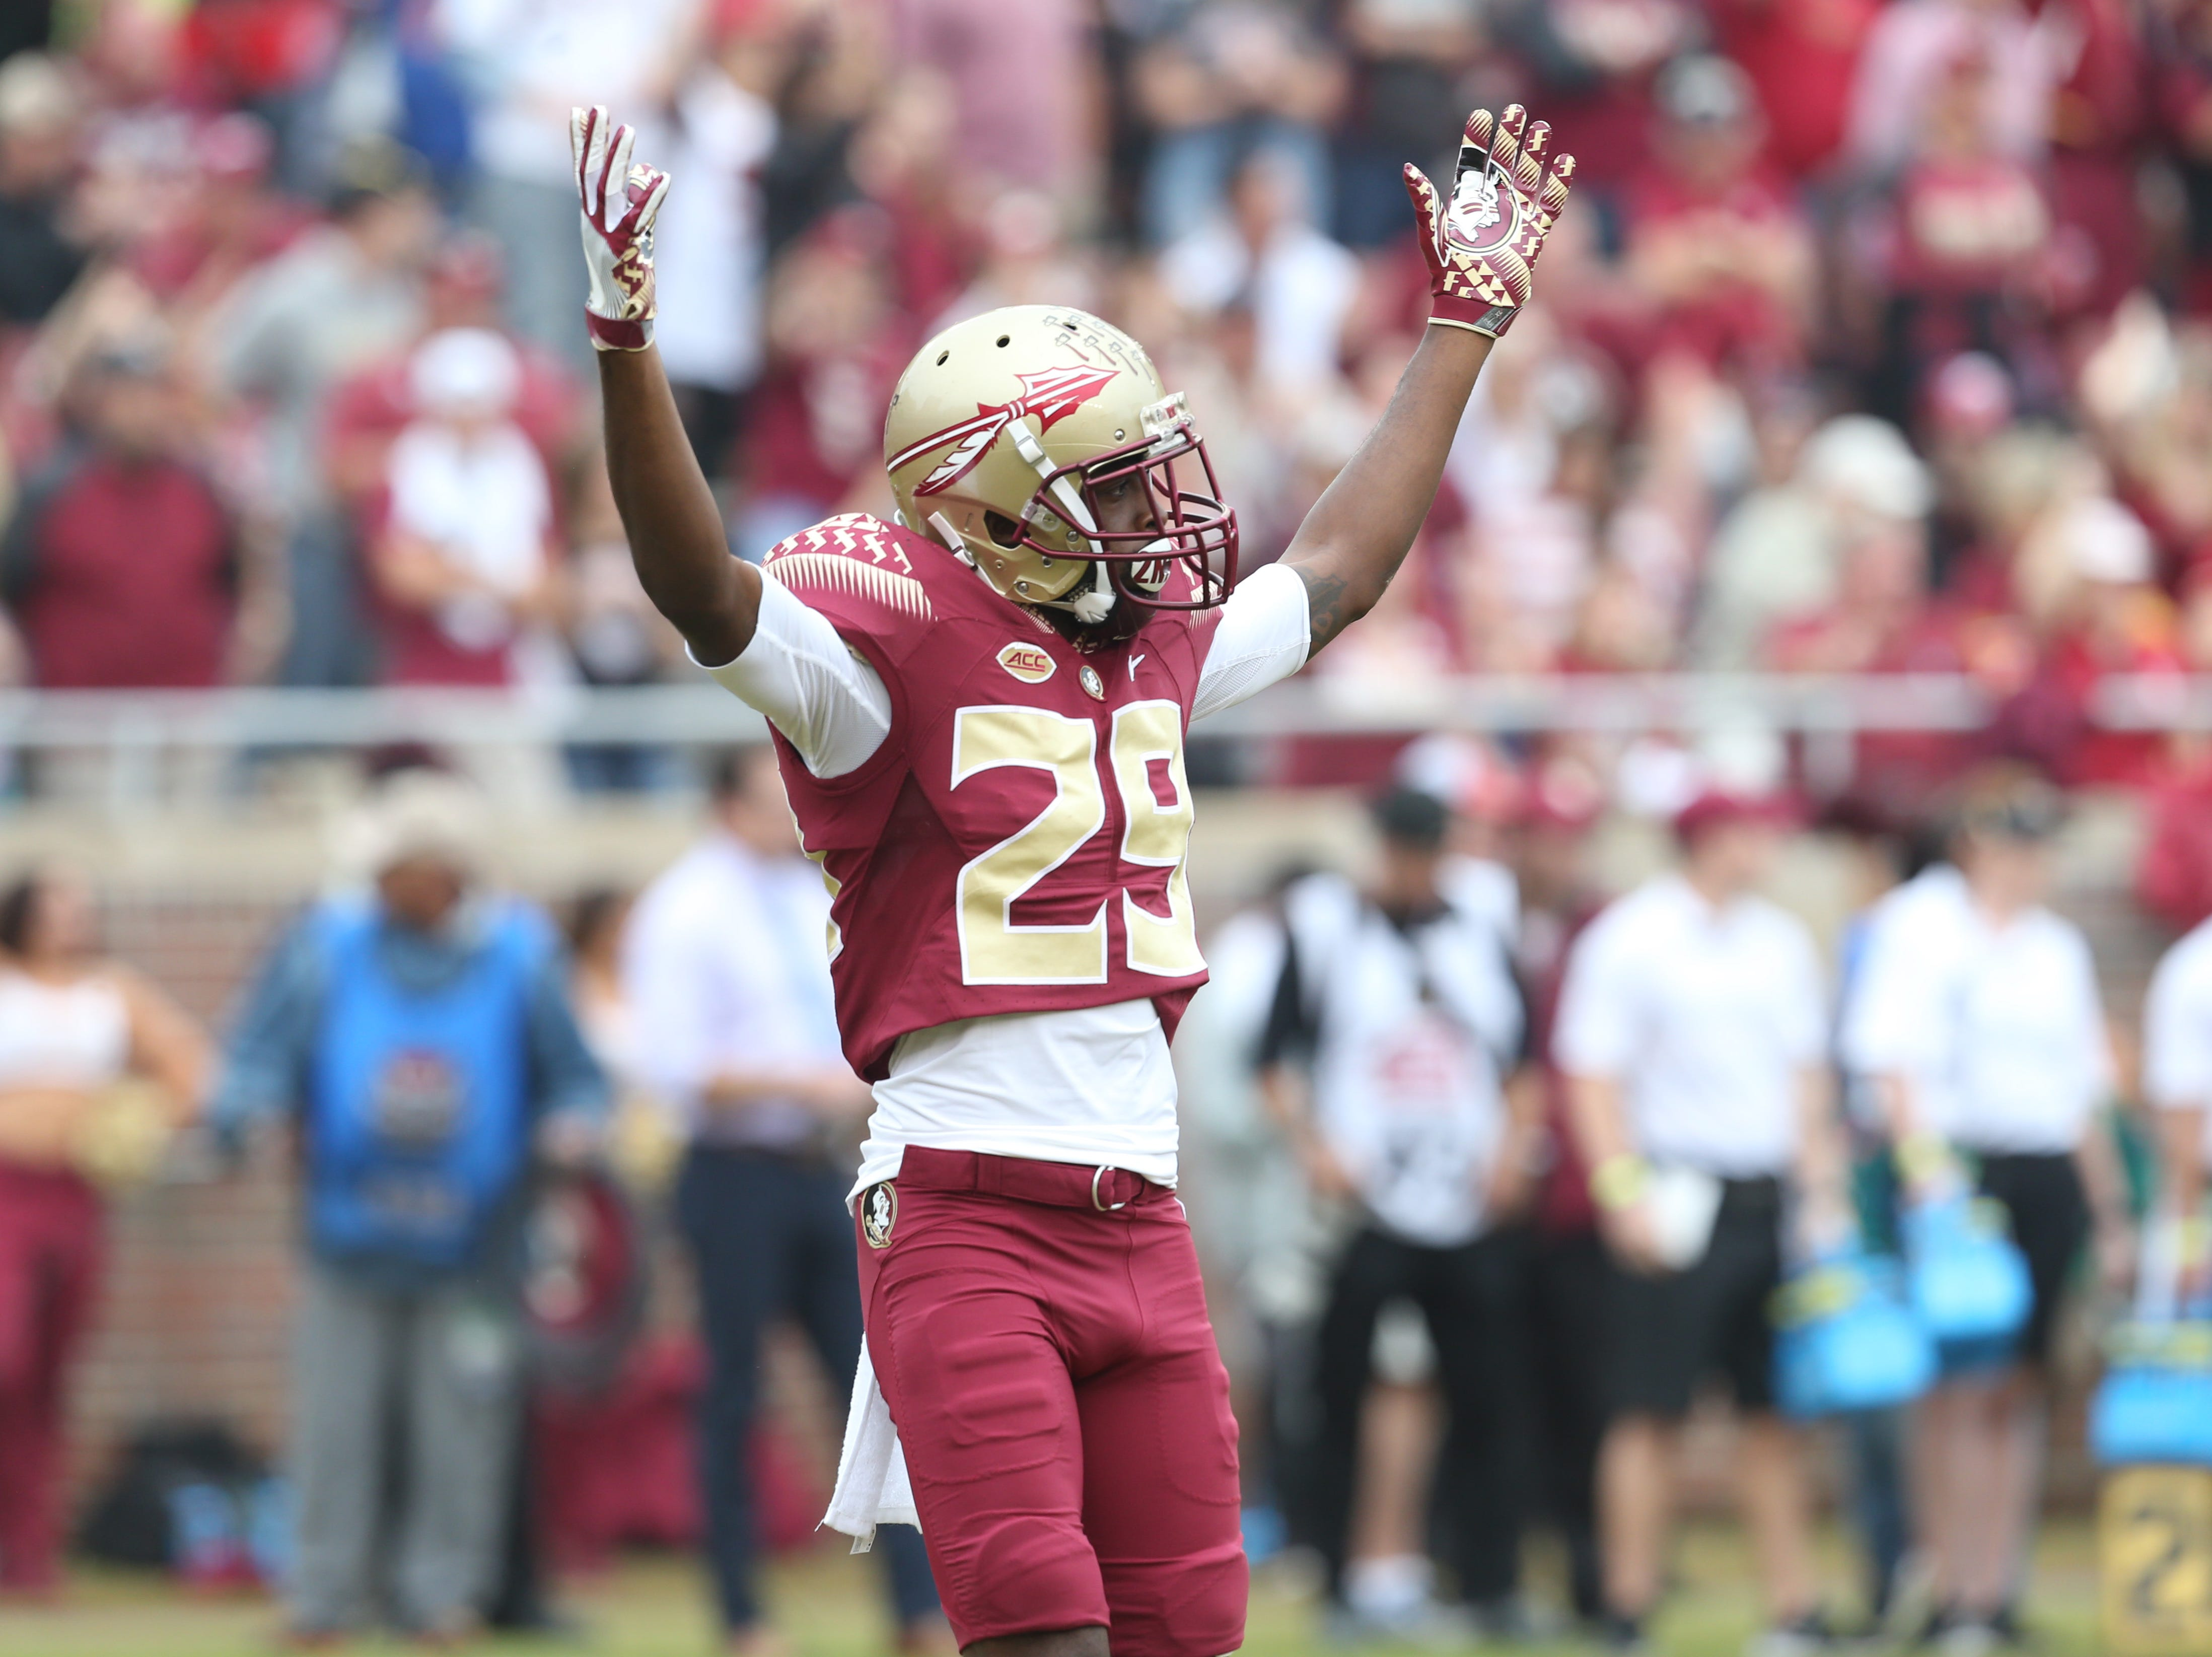 Florida State Seminoles wide receiver D.J. Matthews (29) hypes up the crowd as the Florida State Seminoles take on their rival the Florida Gators in college football at Doak S. Campbell Stadium, Saturday, Nov. 24, 2018.